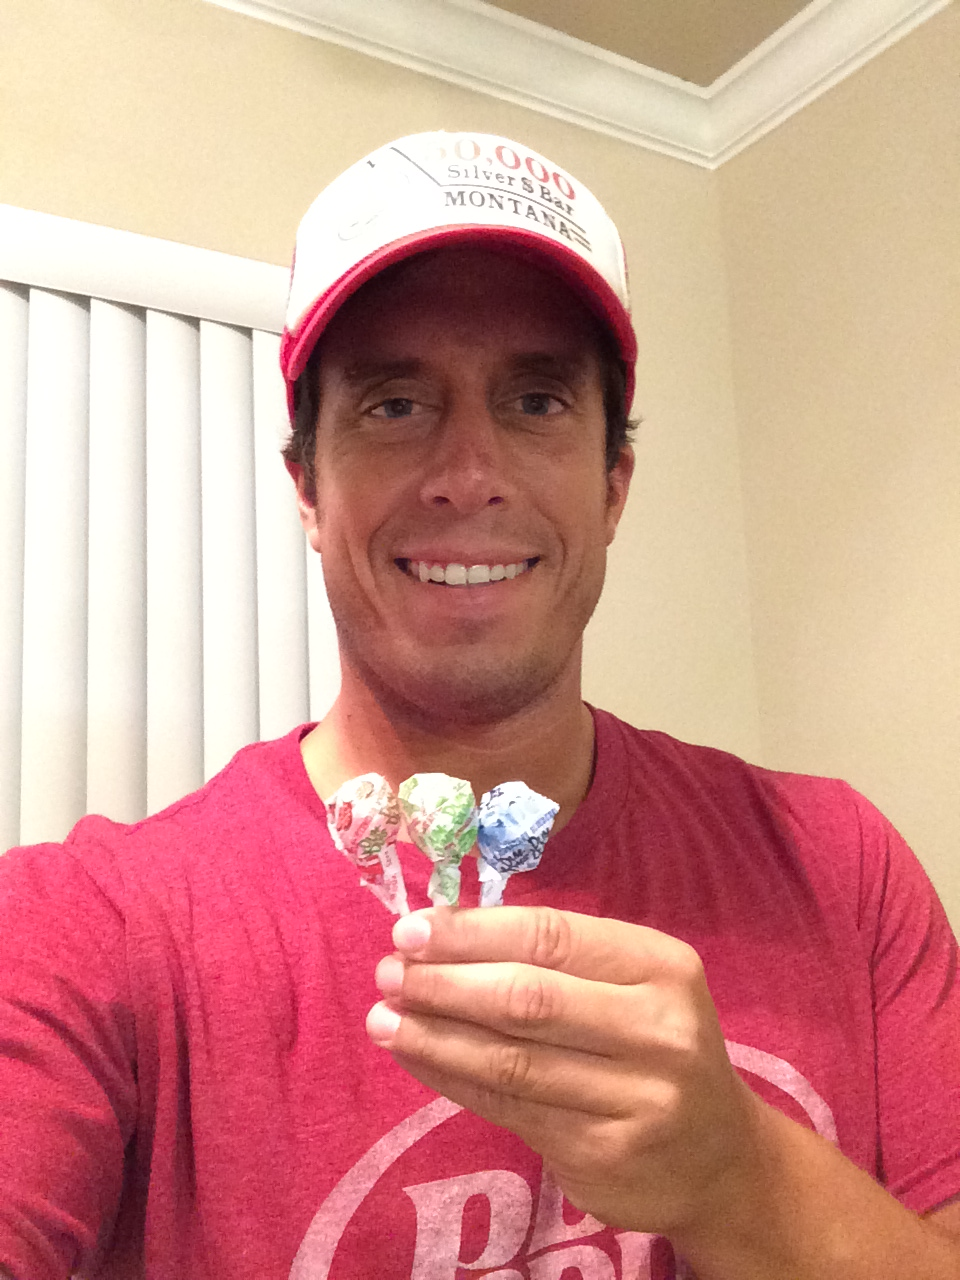 Me with some Dum Dums.